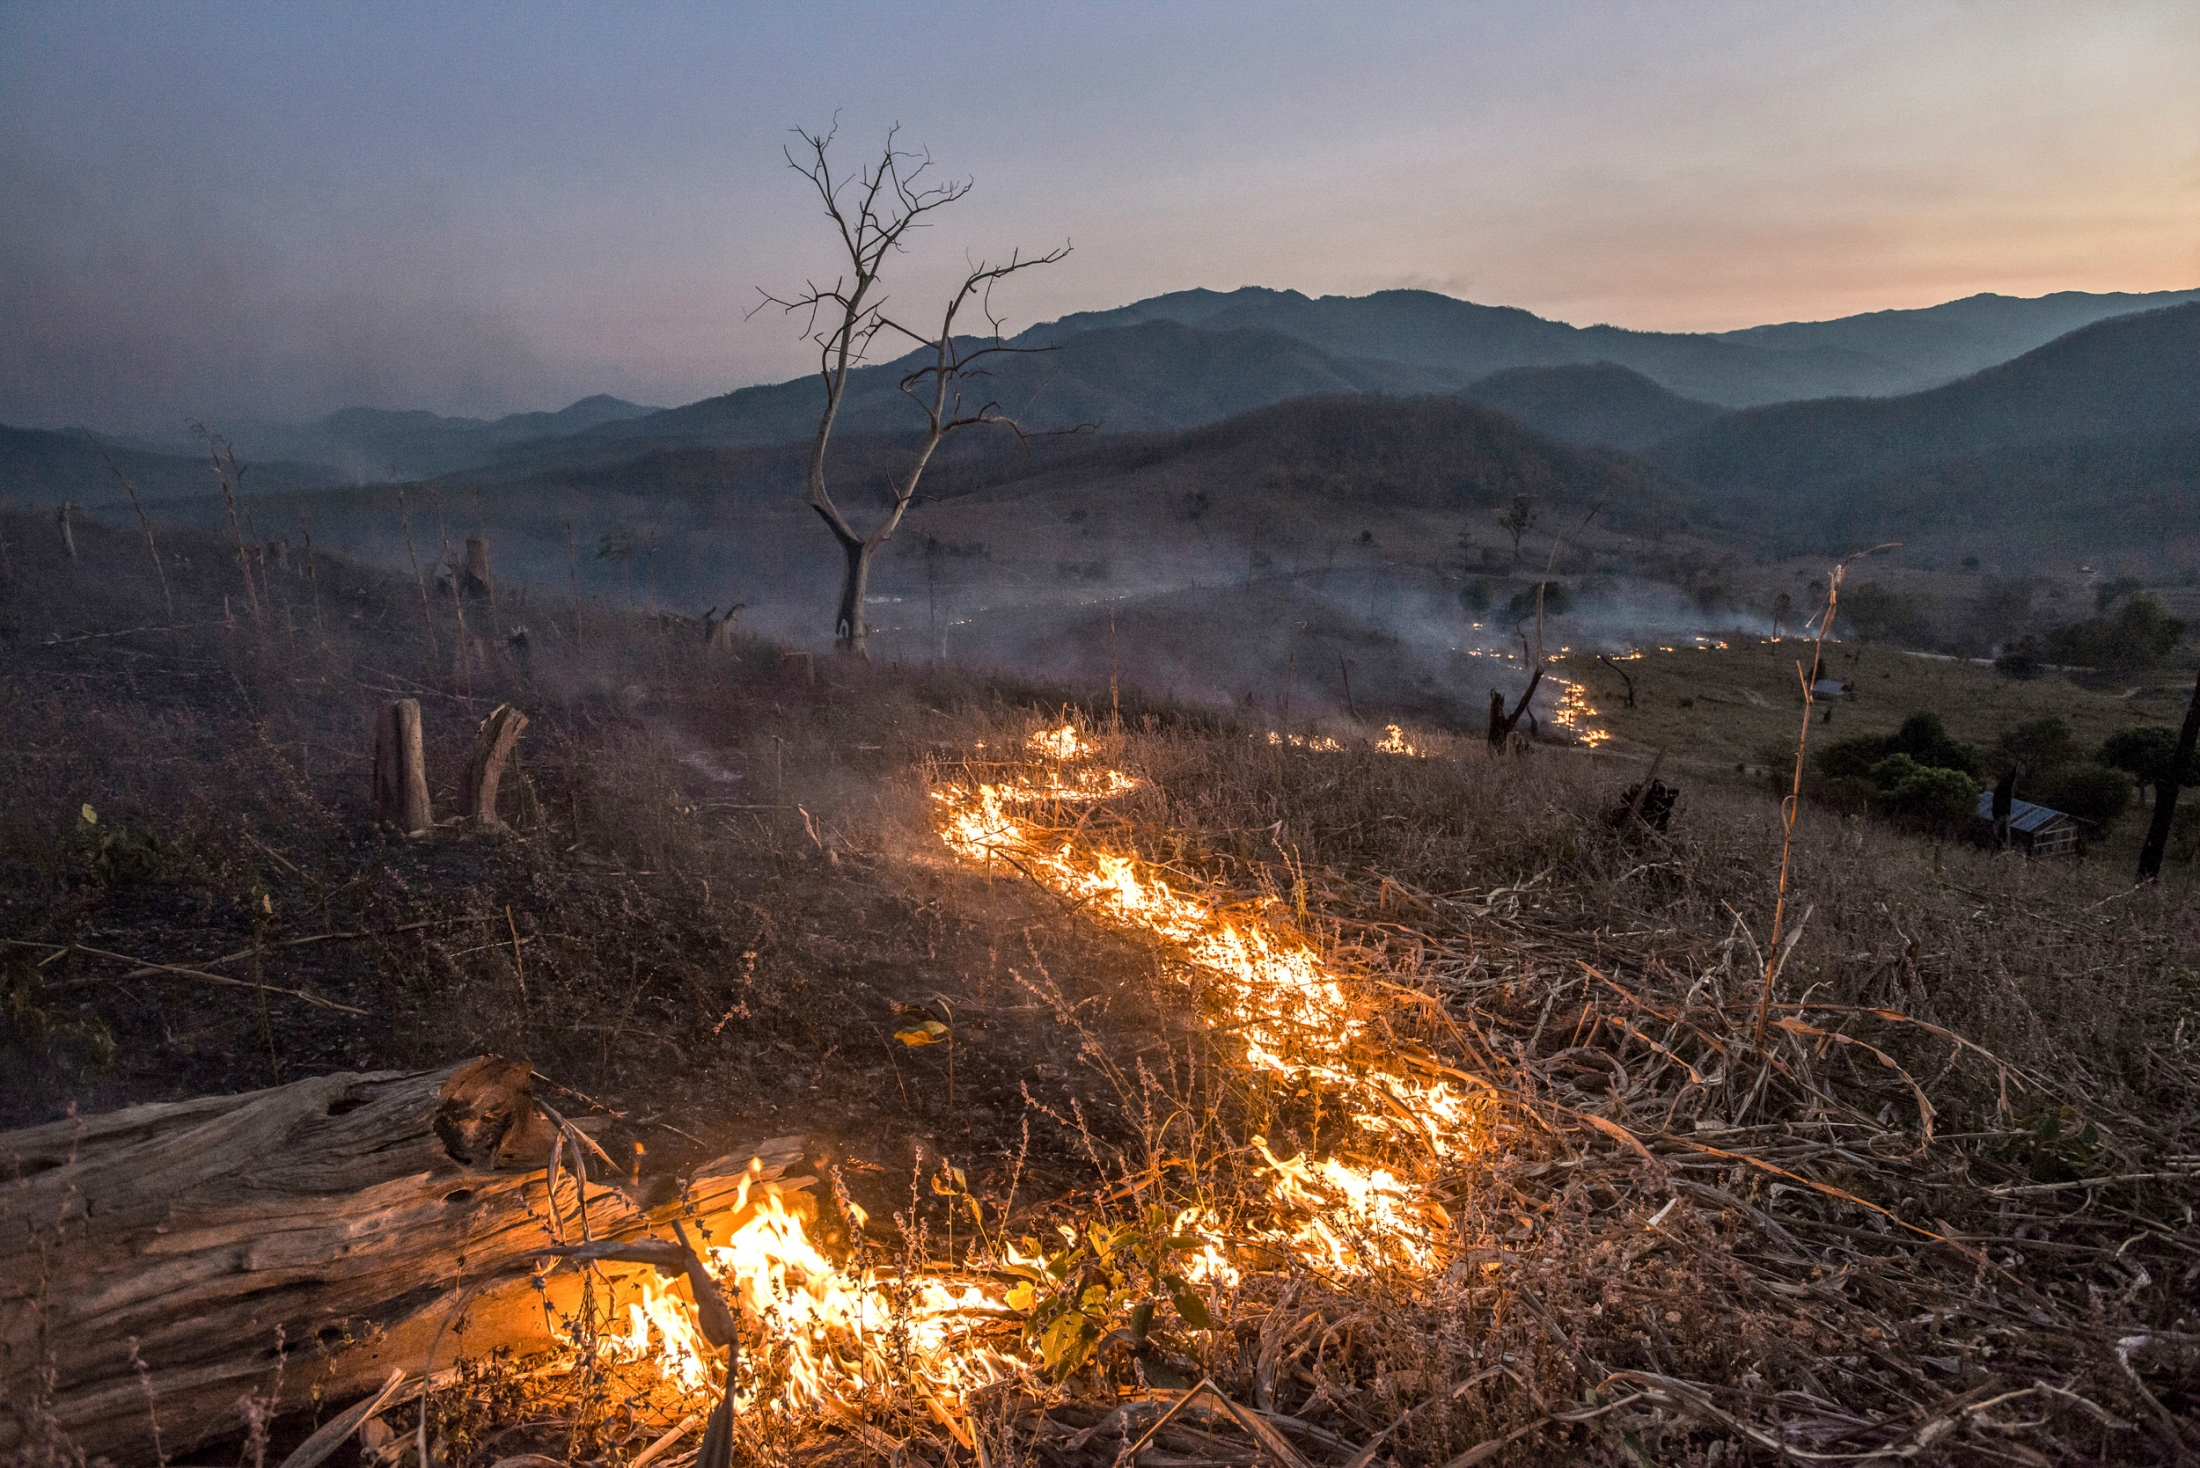 Thousands of acres of forest have been turned into mono crop agricultural areas. Wildfire occurs every year which is by burning crops together with a period of heavy drought causes a longer widespread of wildfire leaving bald mountains and scarred landscapes, further contributing to global warming and extreme weather events. February 2, 2015.